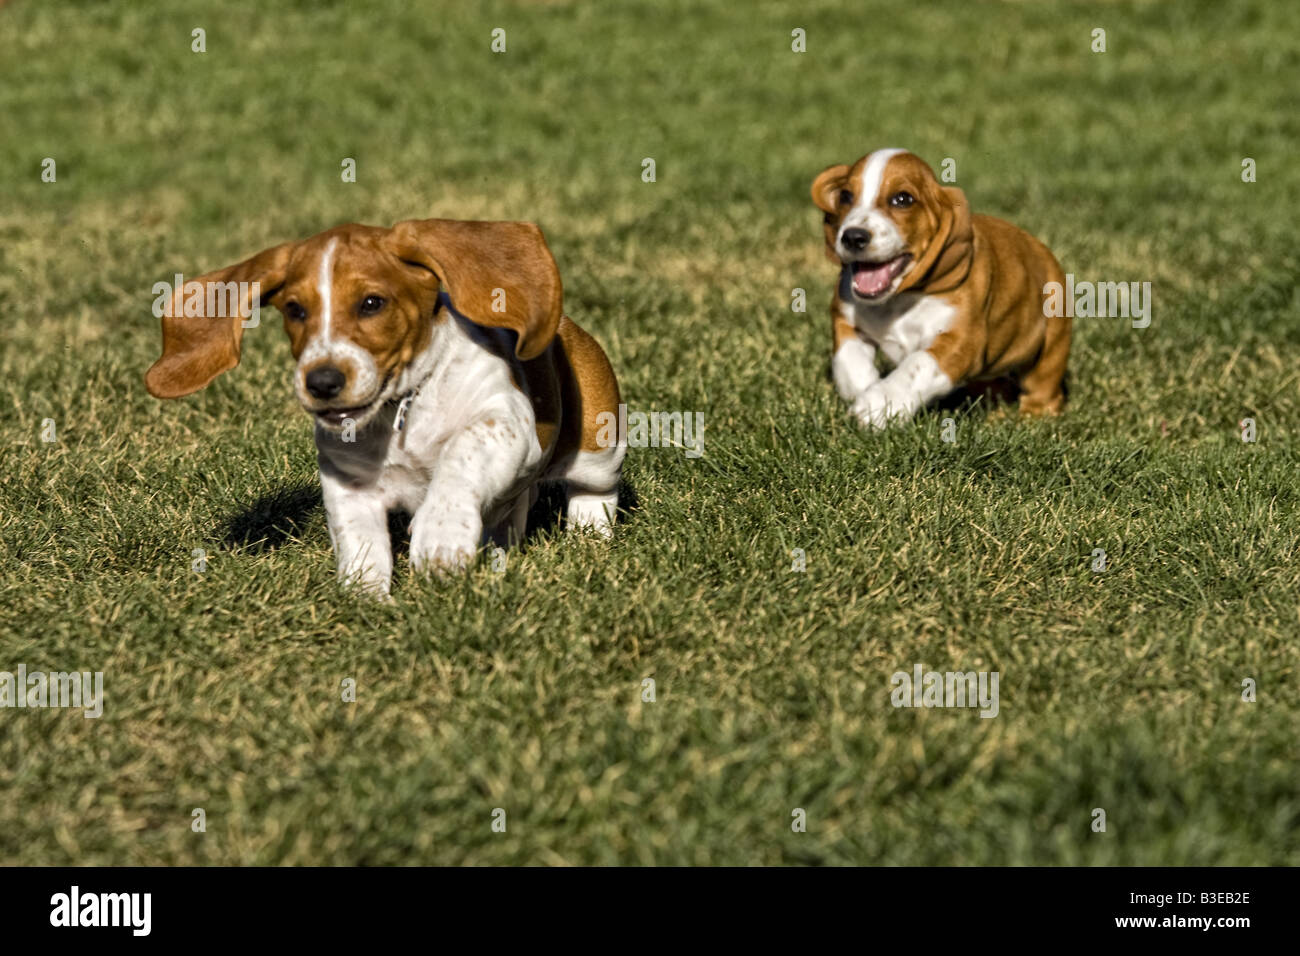 Basset Hound Pup Stock Photos Basset Hound Pup Stock